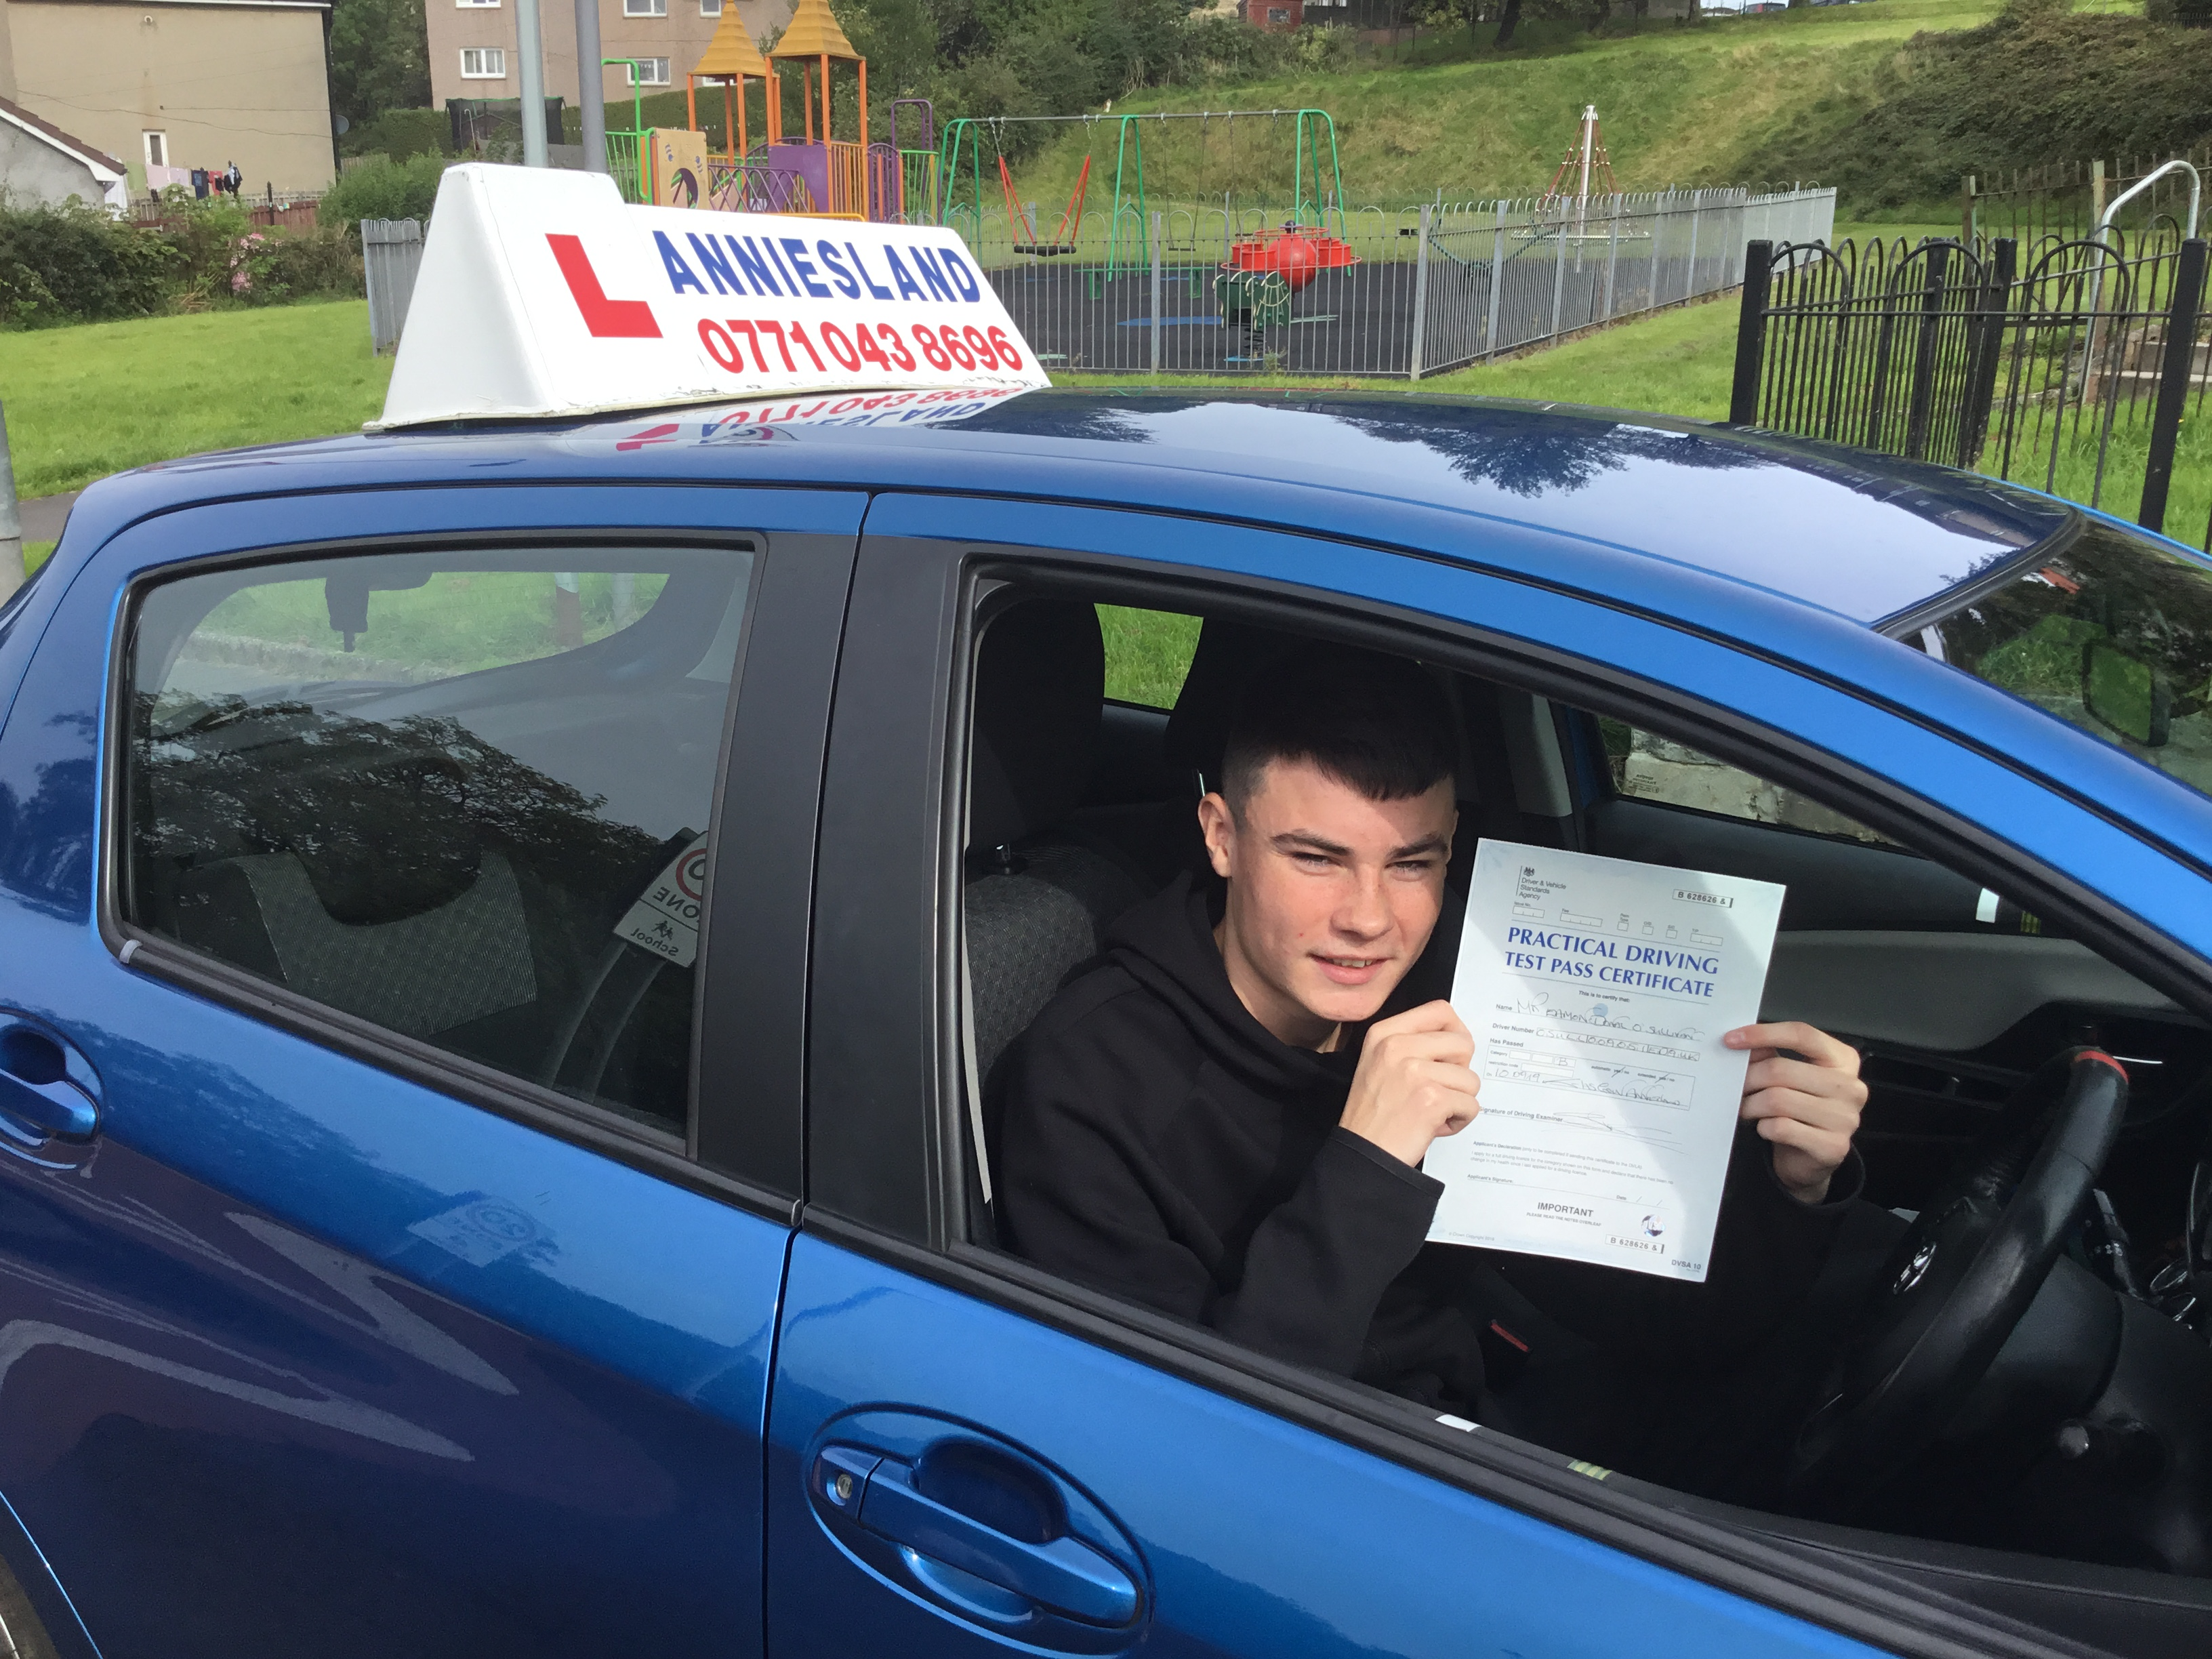 Eamon  successfully passed their driving test with Anniesland Driving School